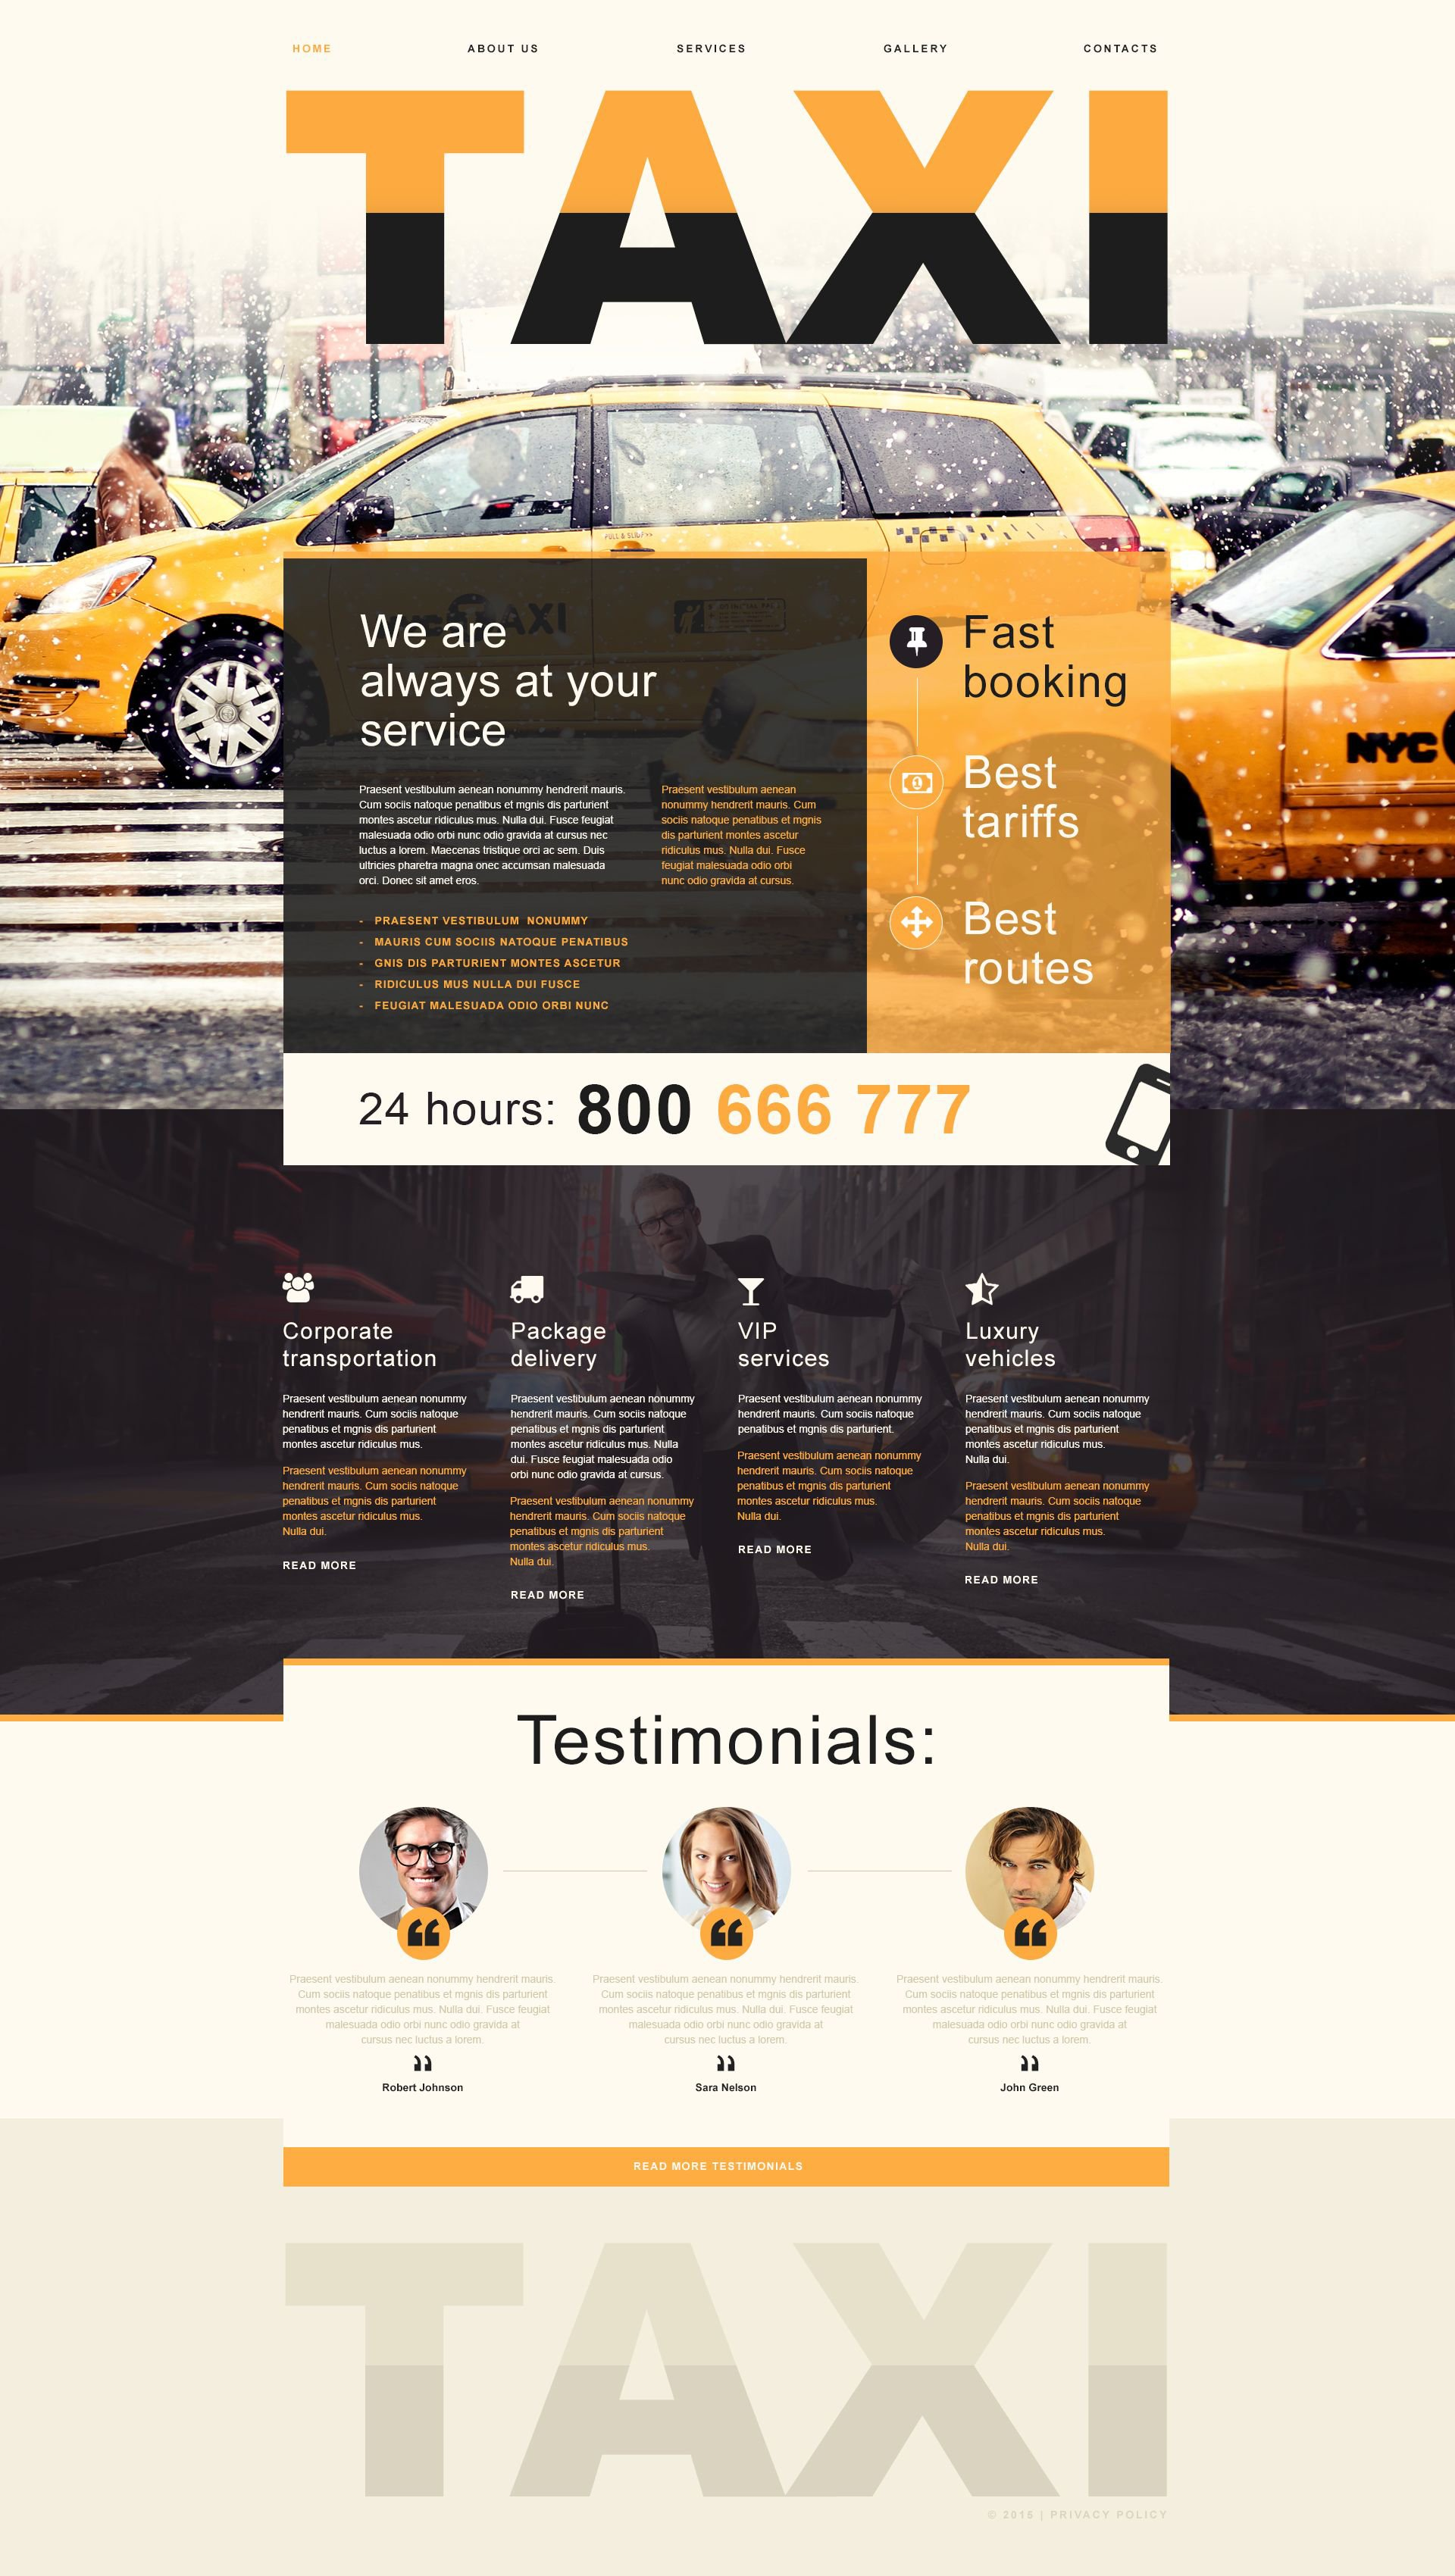 The Taxi Services Company Muse Templates Design 53550, one of the best Muse templates of its kind (transportation, most popular), also known as taxi services company Muse template, cab Muse template, car Muse template, city Muse template, time Muse template, fast Muse template, speed Muse template, driver Muse template, trip Muse template, safety Muse template, need Muse template, urgent Muse template, stop transport Muse template, journey Muse template, phone and related with taxi services company, cab, car, city, time, fast, speed, driver, trip, safety, need, urgent, stop transport, journey, phone, etc.